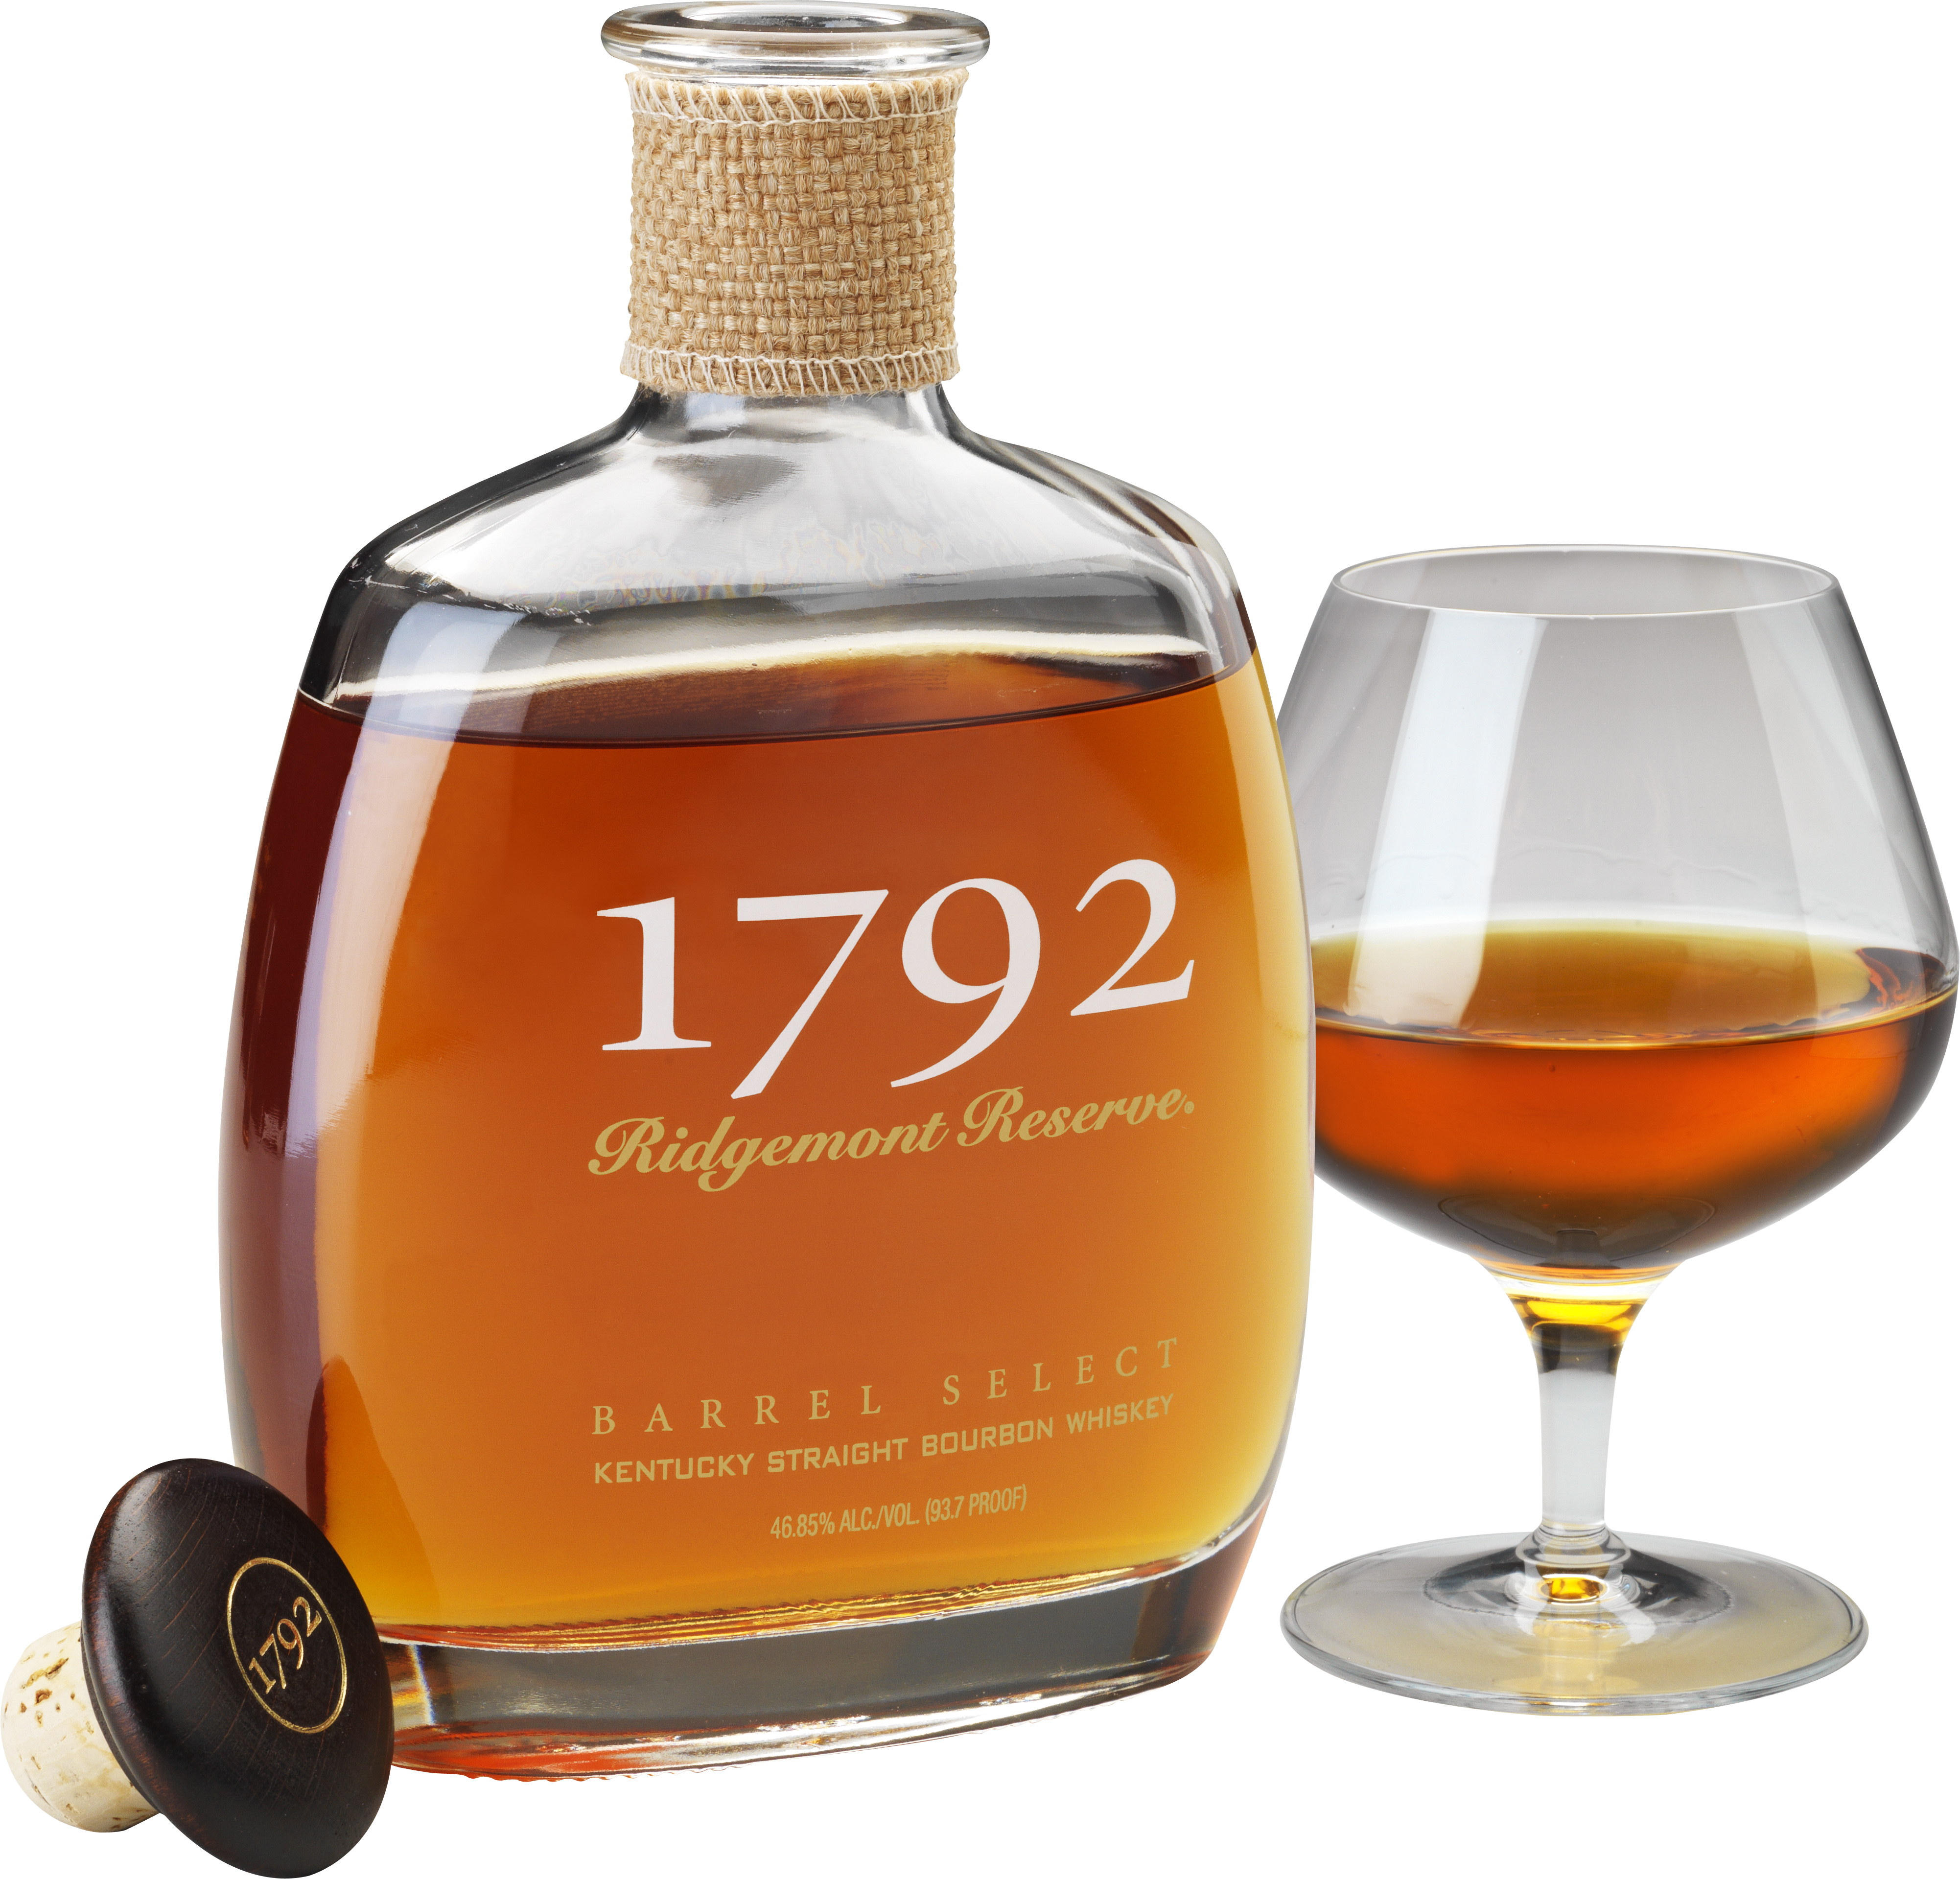 1792 Ridgemont Reserve Bourbon Review